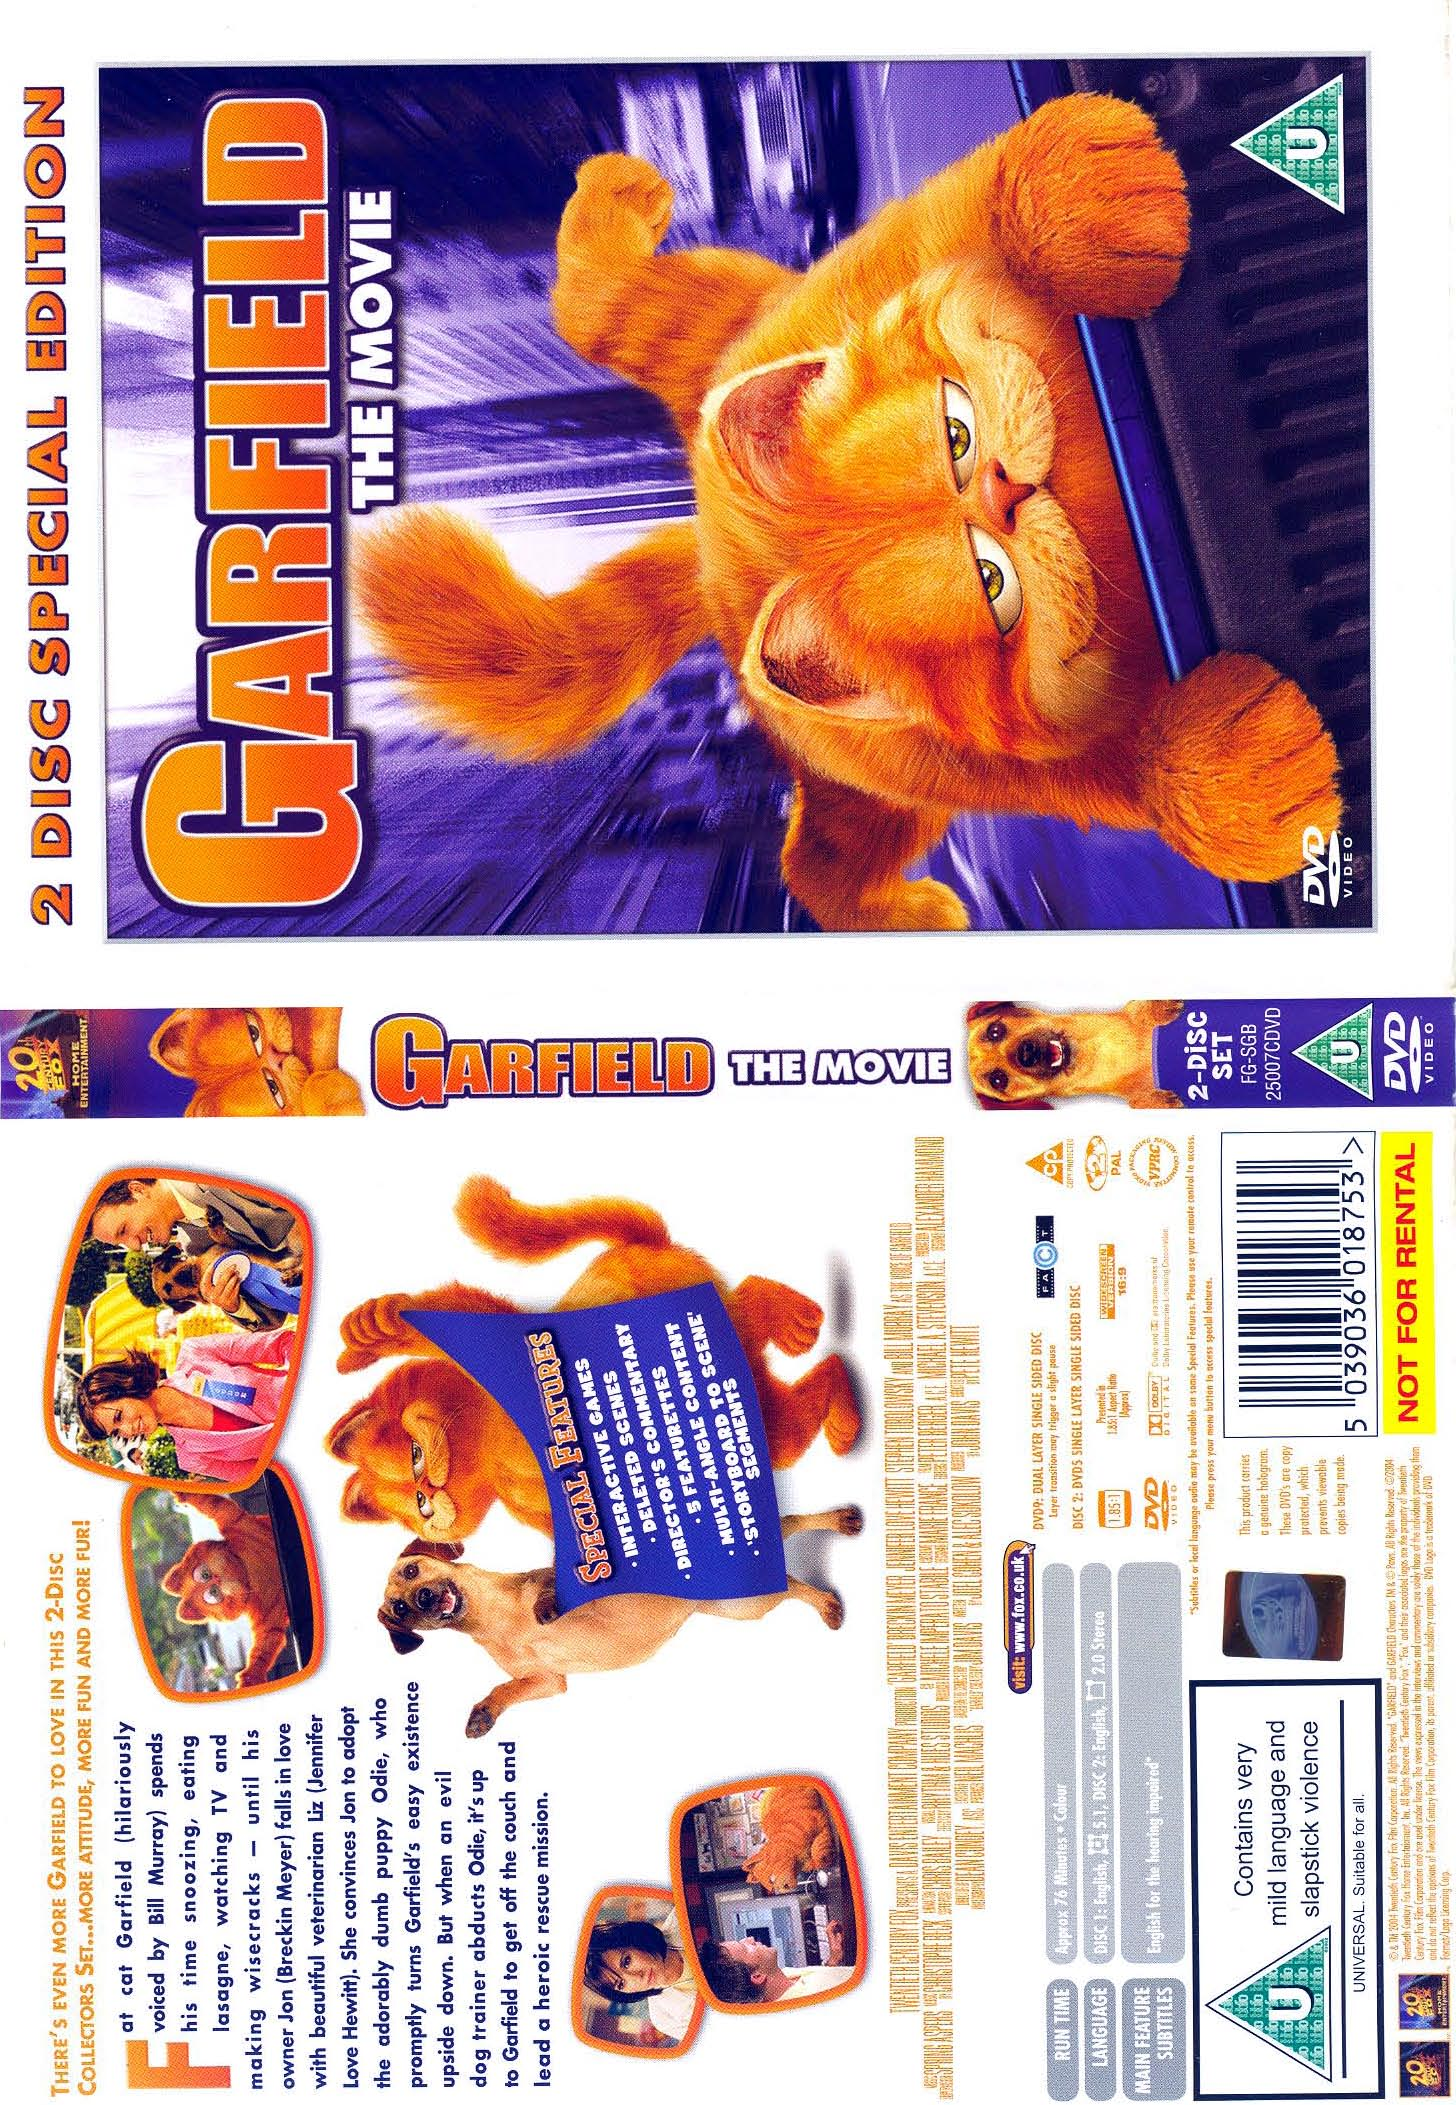 Covers Box Sk Garfield The Movie 2 Disc Special Edition High Quality Dvd Blueray Movie